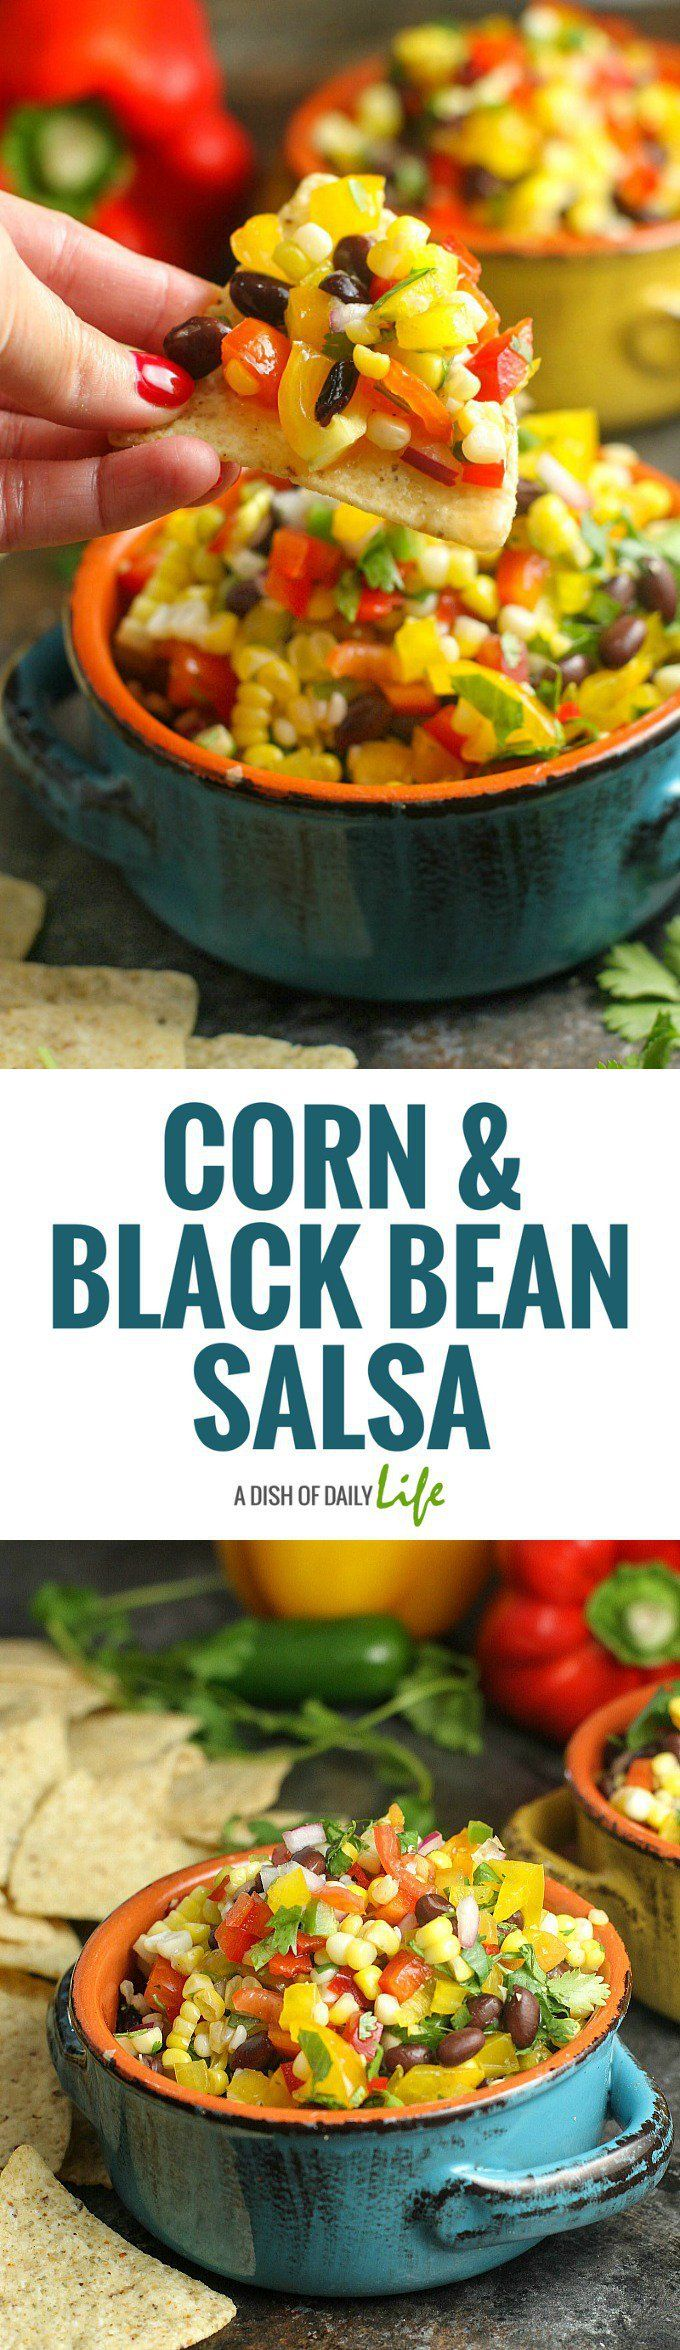 Corn Salsa with Black Beans is the perfect party appetizer for summer get-togethers...serve it with chips or as a salad side dish! Easy to make and healthy as well! Appetizer | Summer side dishes | Salad | Corn | Salsa | Mexican | Healthy | BBQ side dishes | Recipes for parties